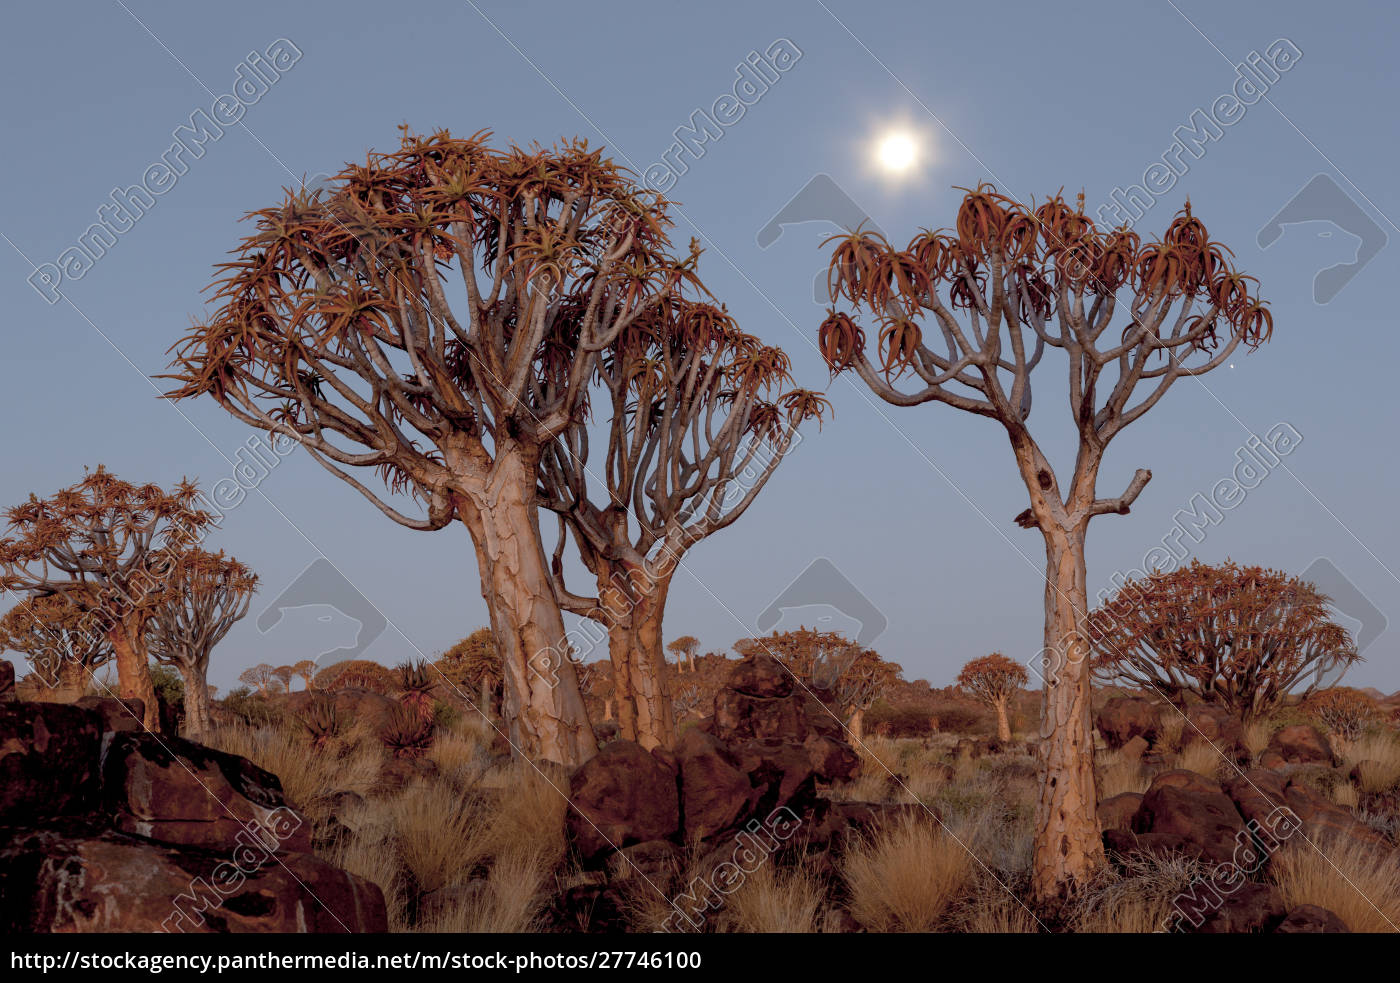 africa, , namibia, , keetmanshoop, , quiver, tree, forest, - 27746100